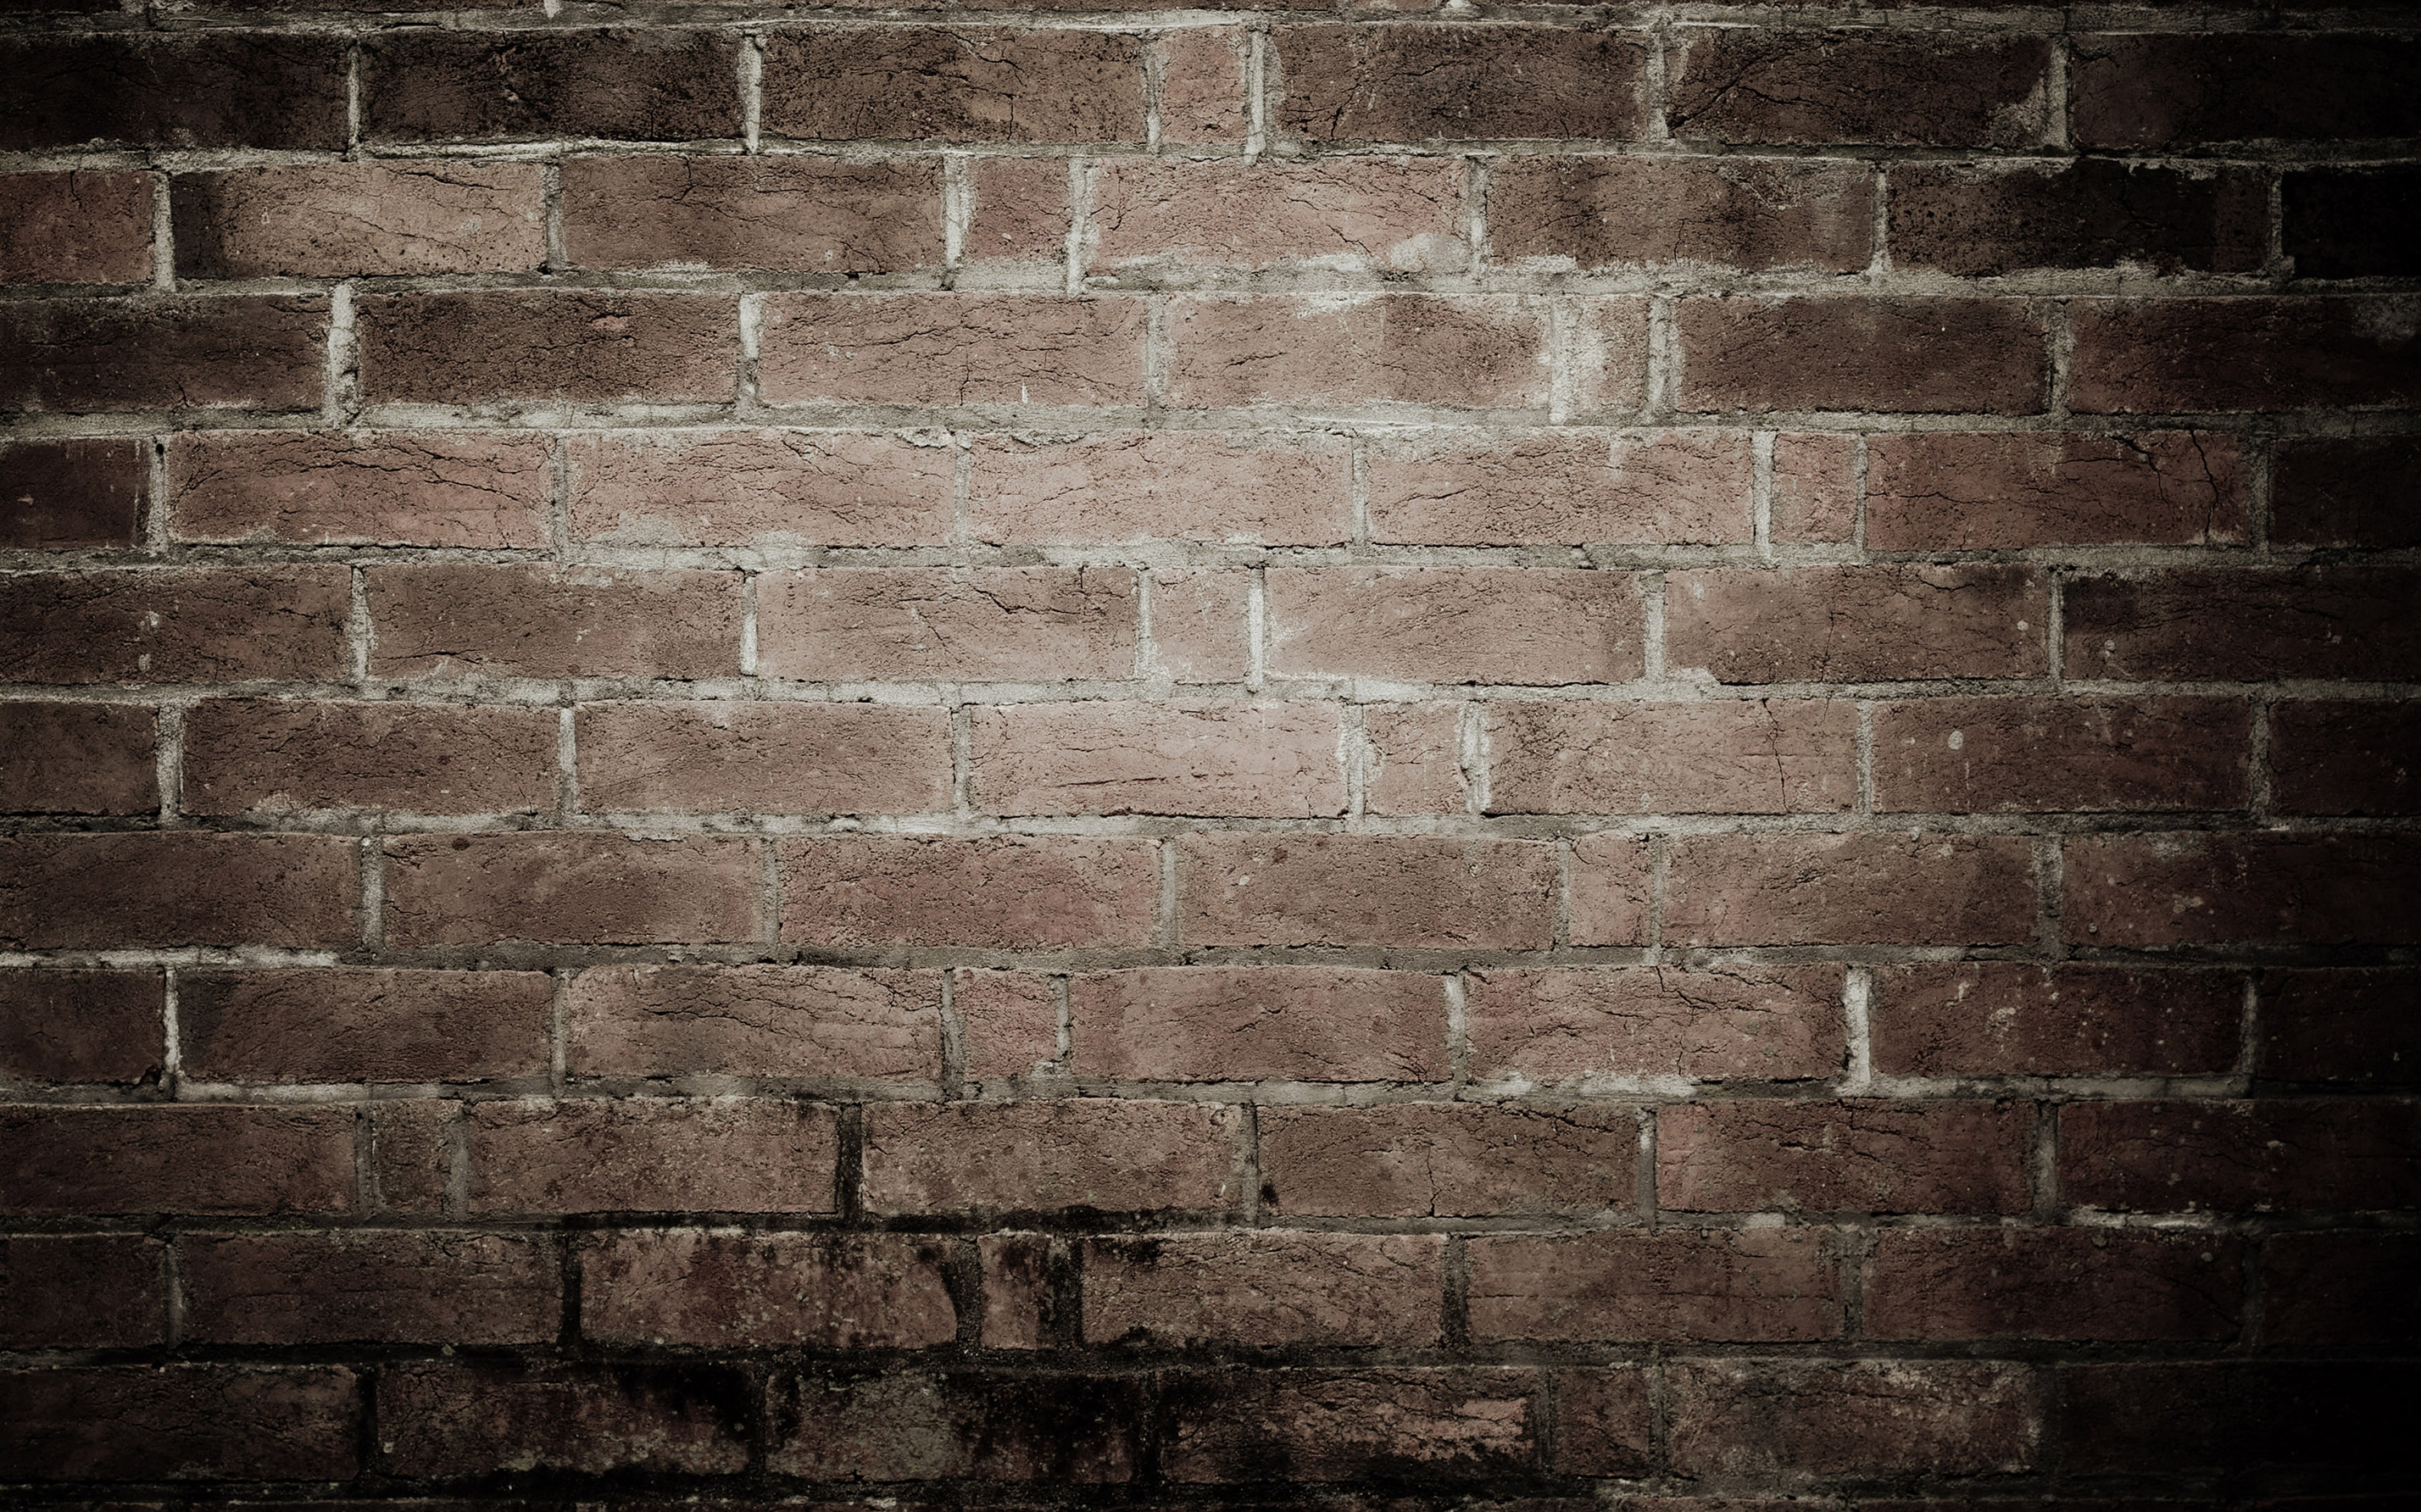 old brick wall, texture, bricks, brick wall texture, background, download